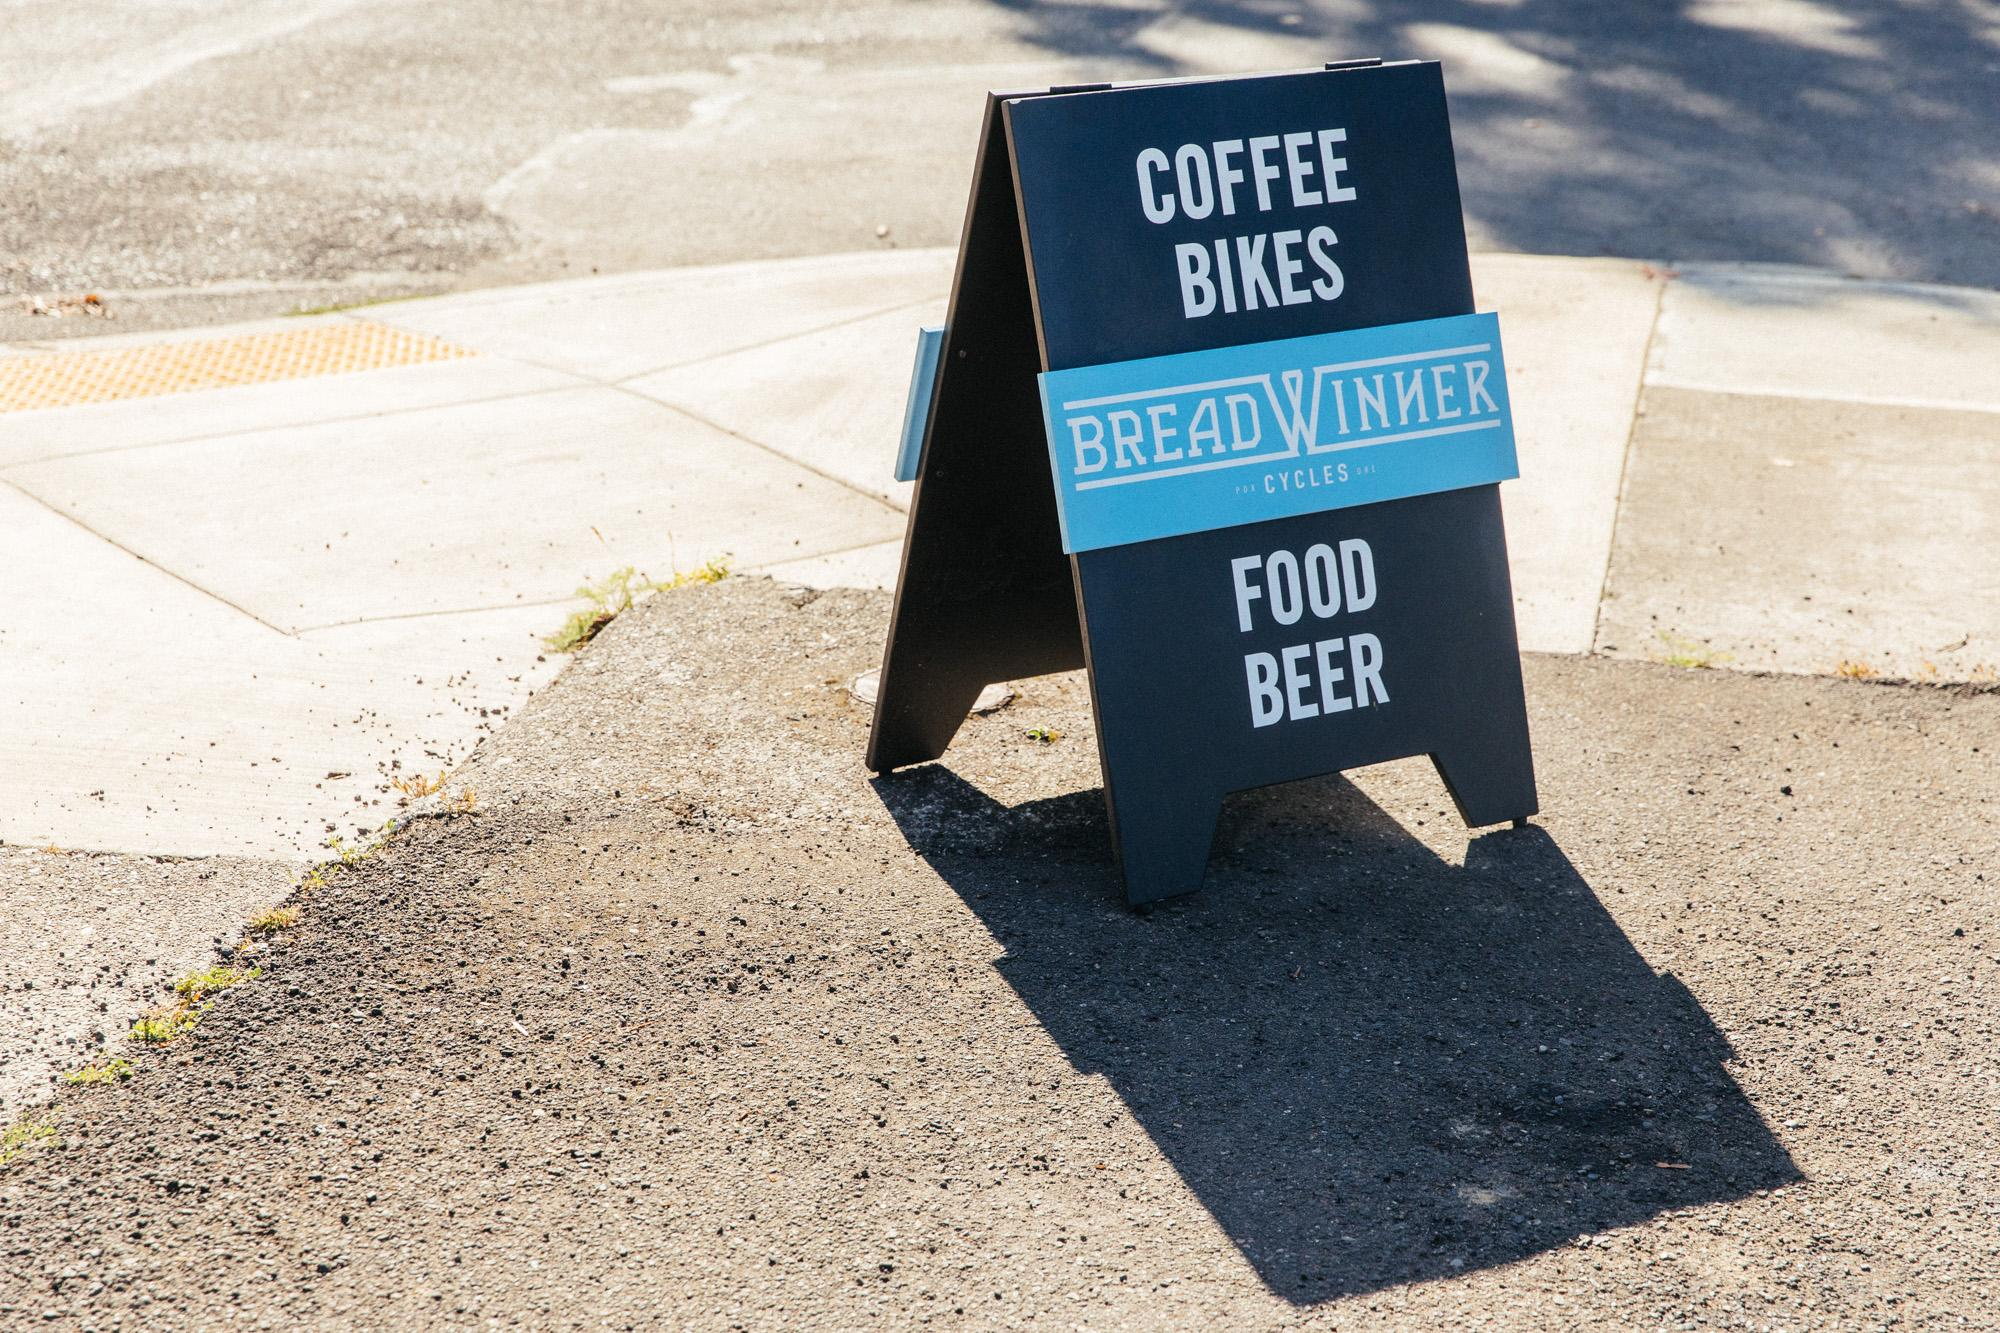 Coffee Bikes Food Beer